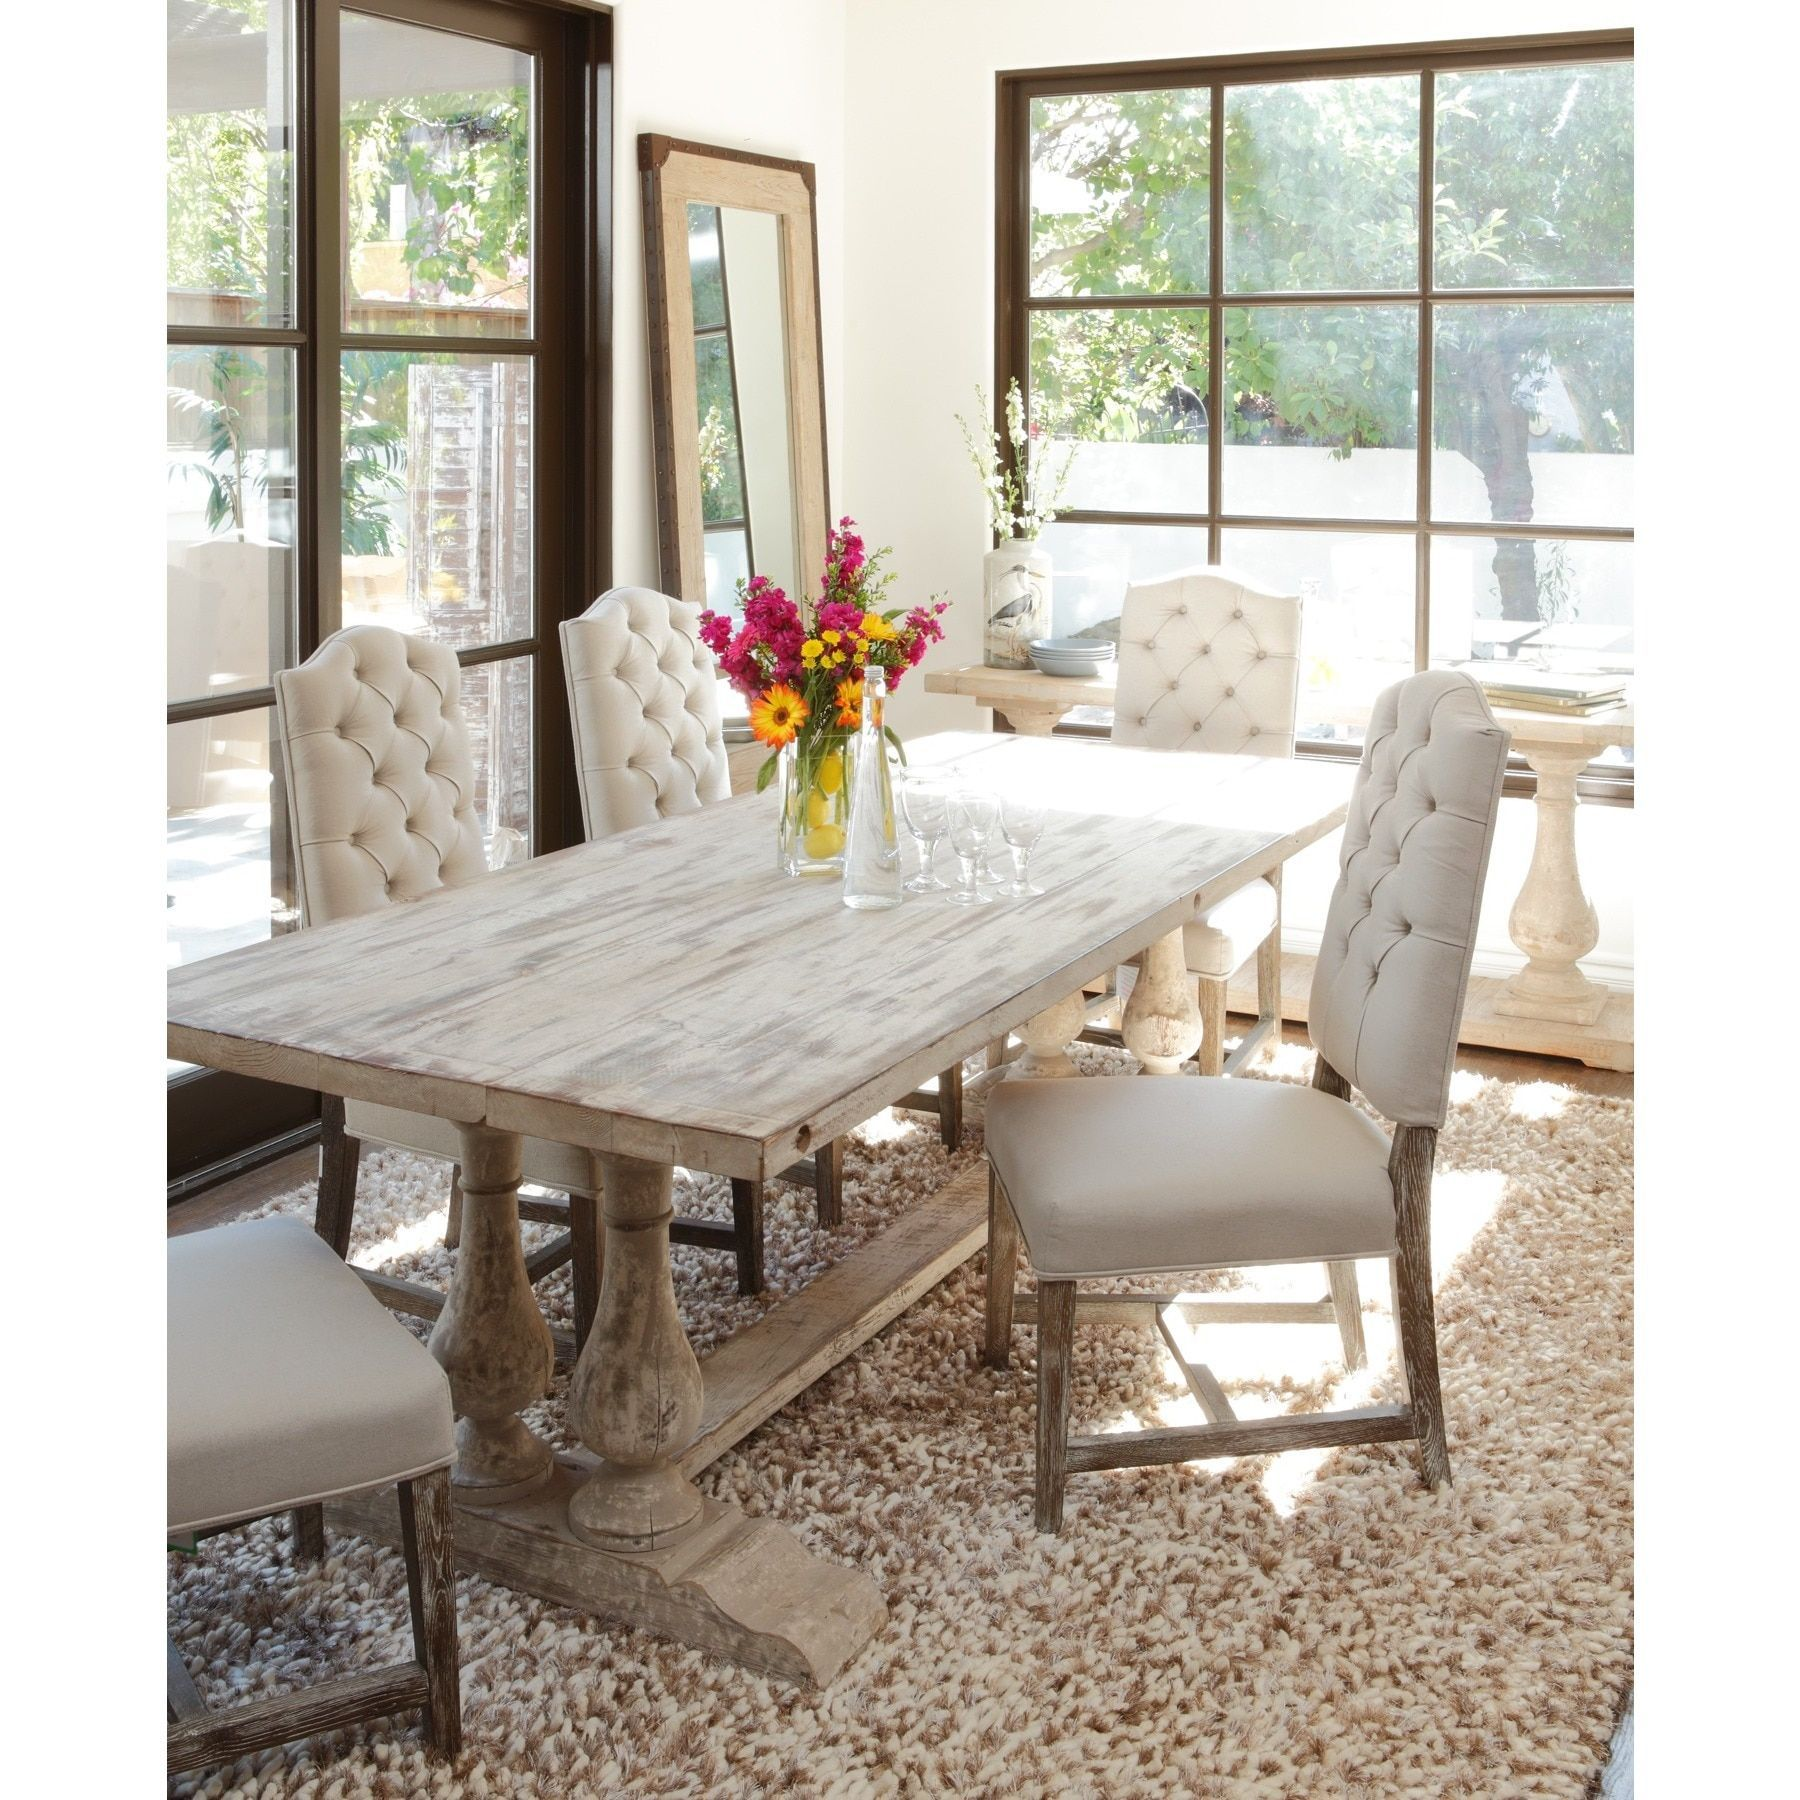 Antique White Dining Room Kosas Home Winfrey Antique White Reclaimed Pine 98Inch Dining